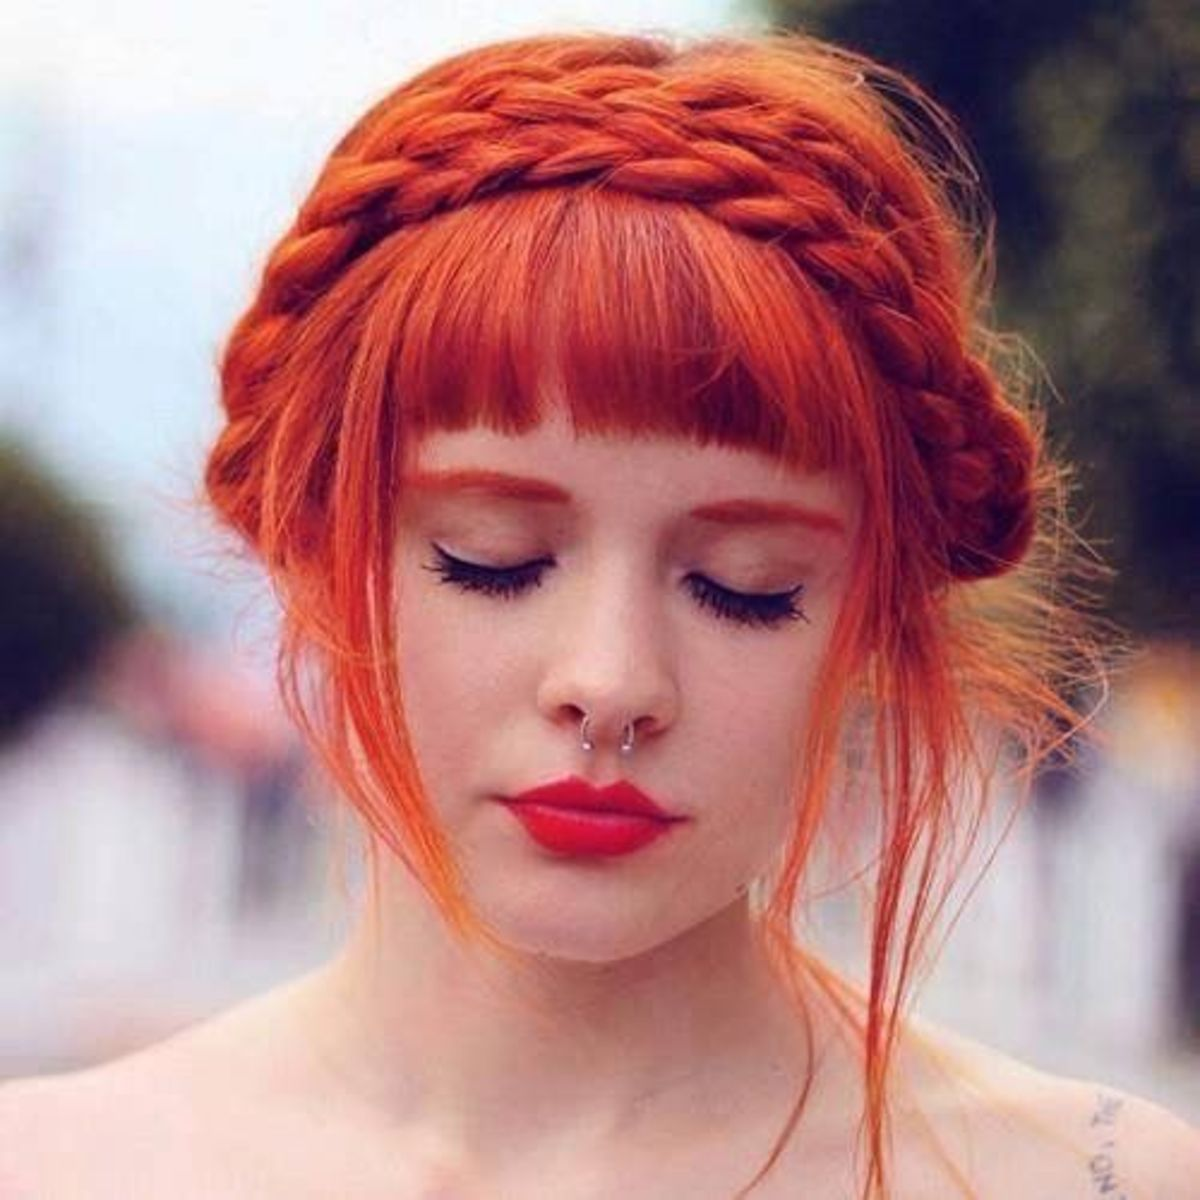 most innocent hairdo style with a braid on top of the head like a hair band and straight bangs. Stunning orange red hair